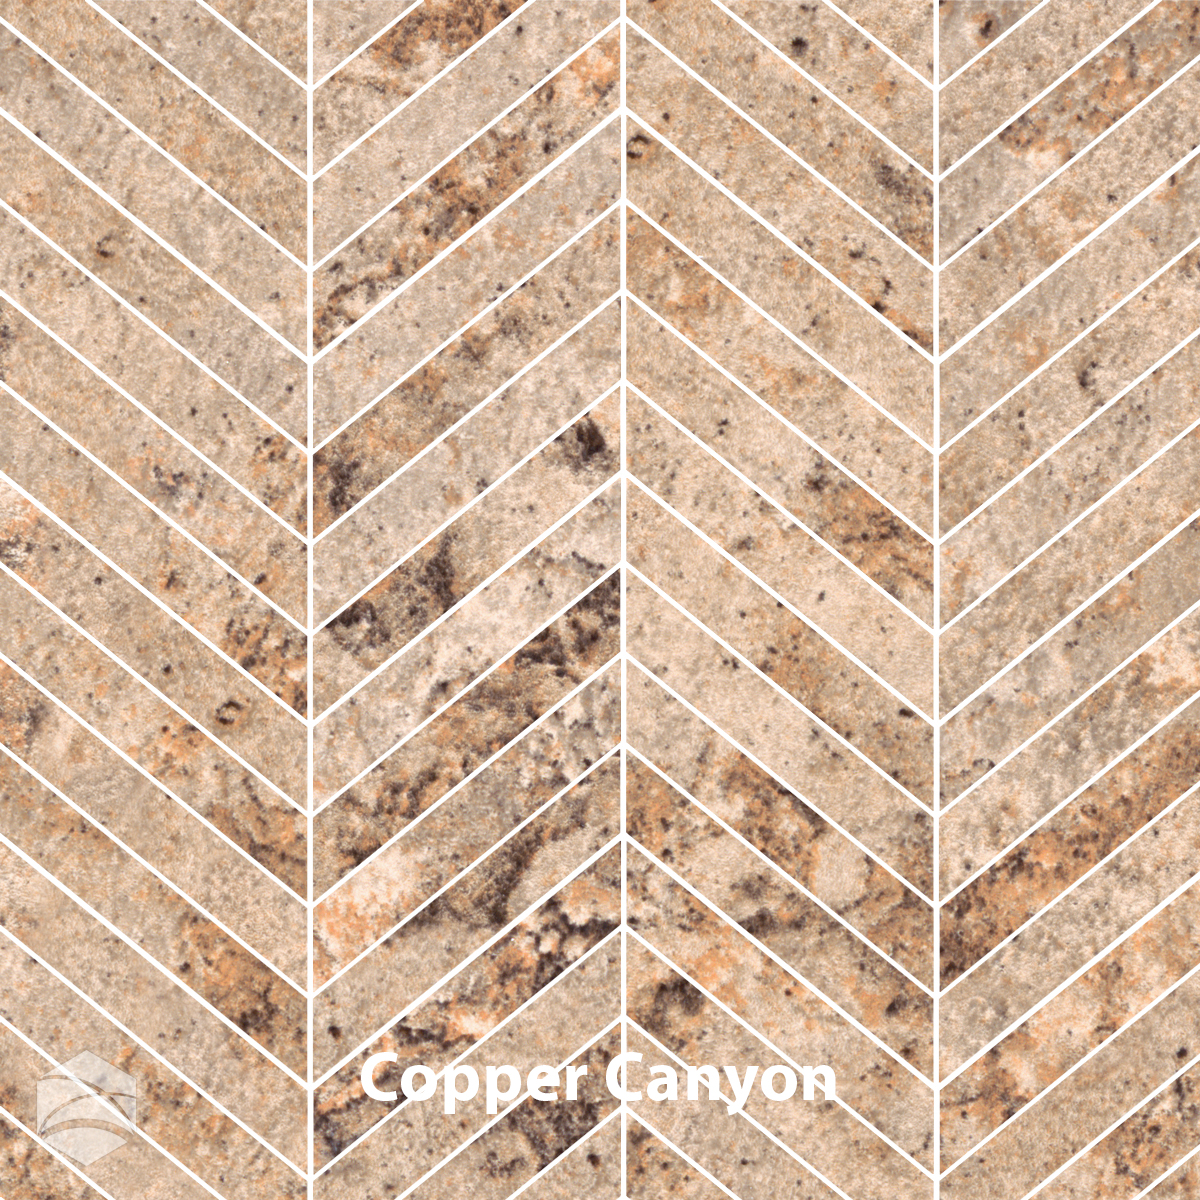 Copper Canyon_chevron_V2_12x12.jpg